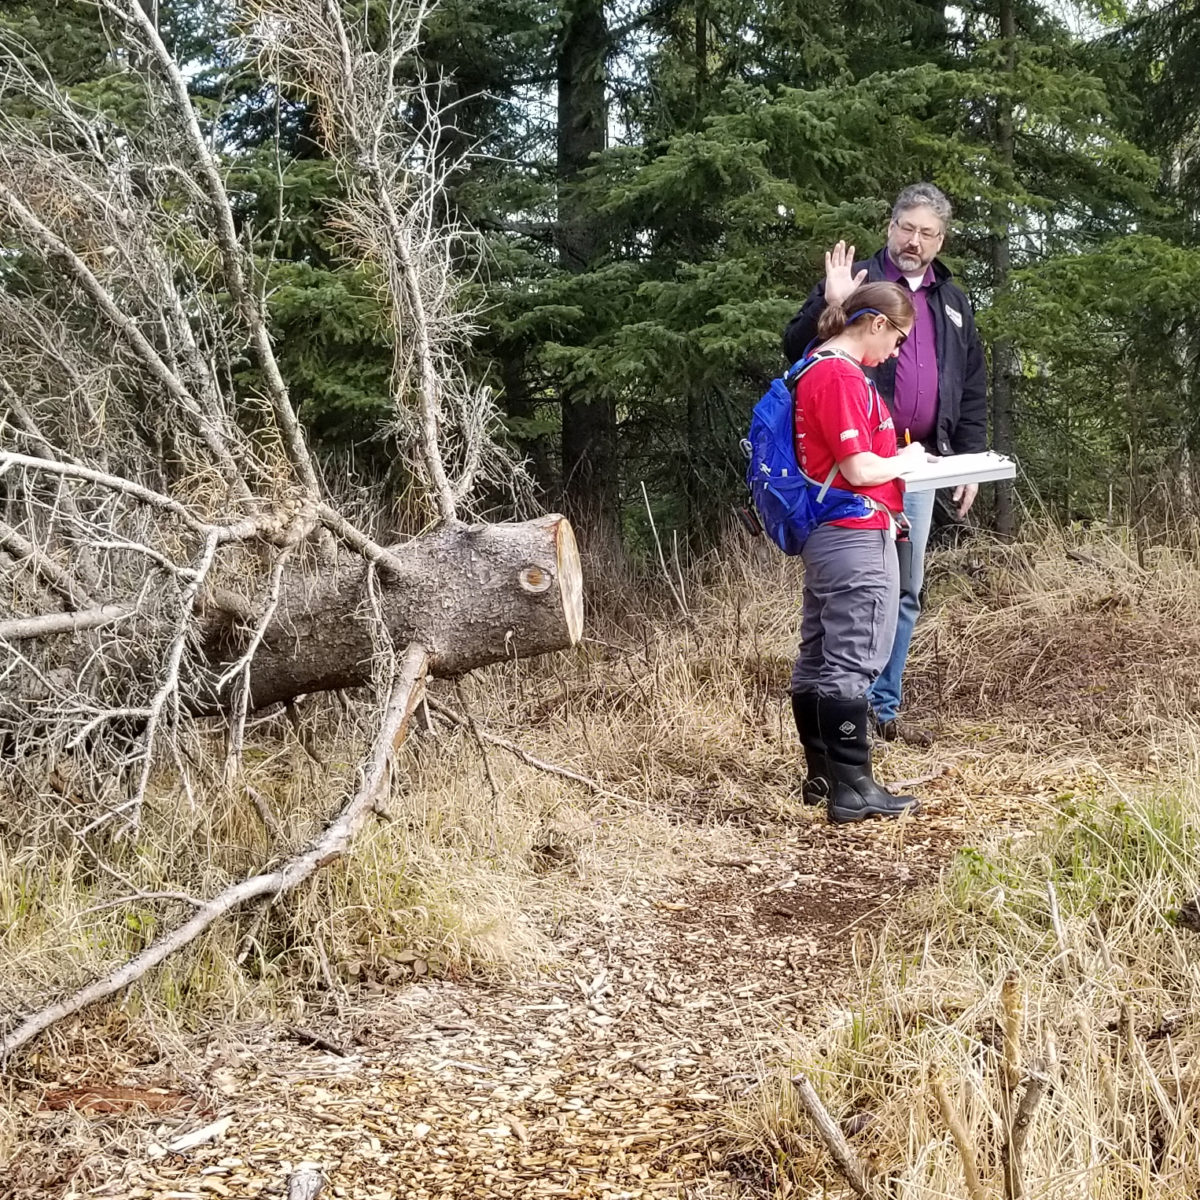 """Schmidt and Hezekiah """"Ky"""" Holland are on site surveying vegetation in the woods"""